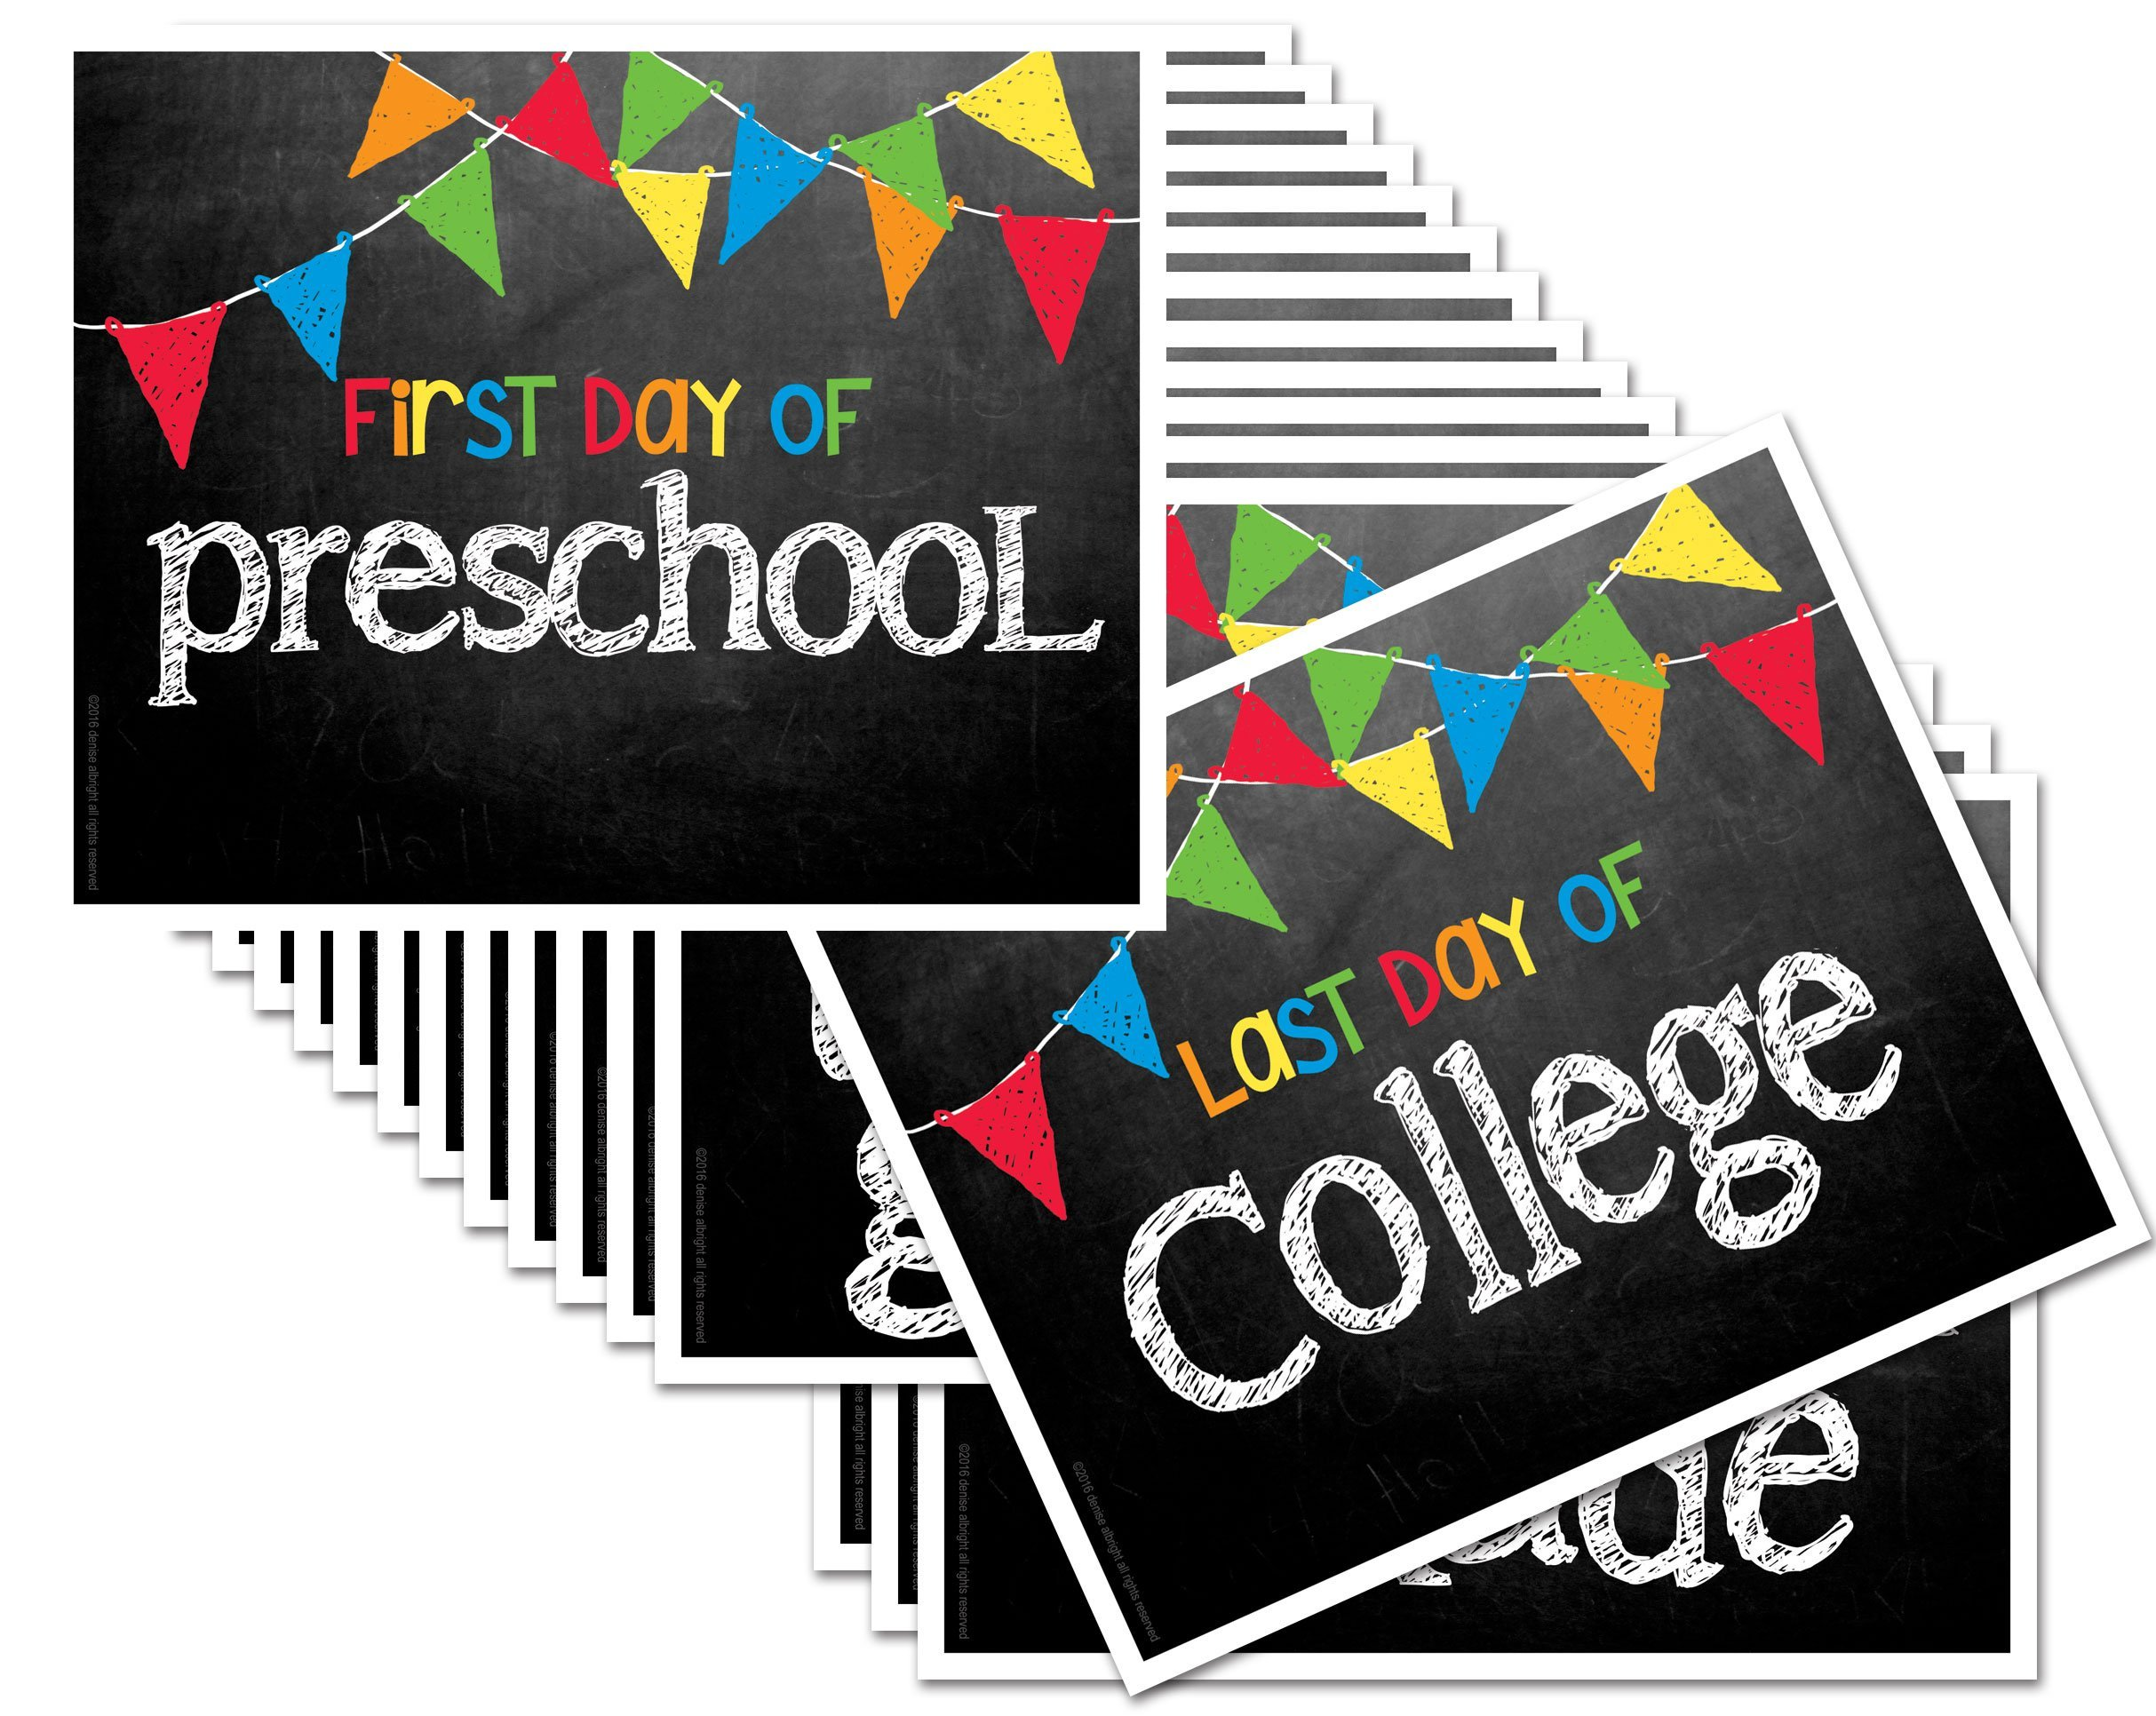 First Day & Last Day of School 8x10 Photo Prop Signs Entire Series Preschool - College Primary Color Flags for Boys or Girls,16-Grade Levels: Preschool, Pre-K, Kindergarten, 1st-12th Grades to College by Denise Albright